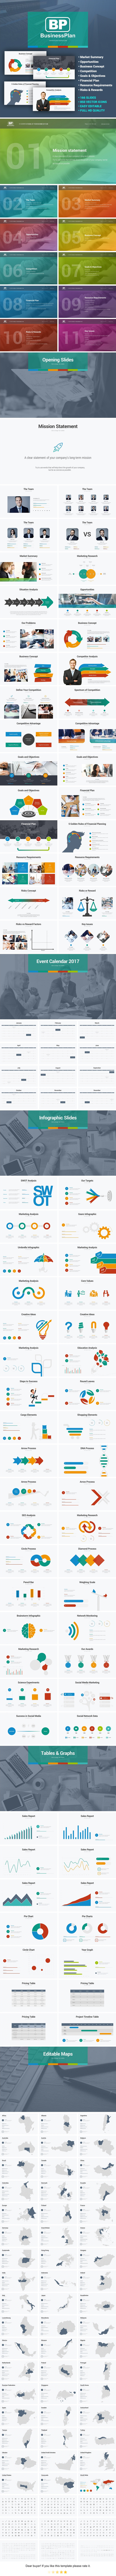 Business Plan - Business PowerPoint Templates